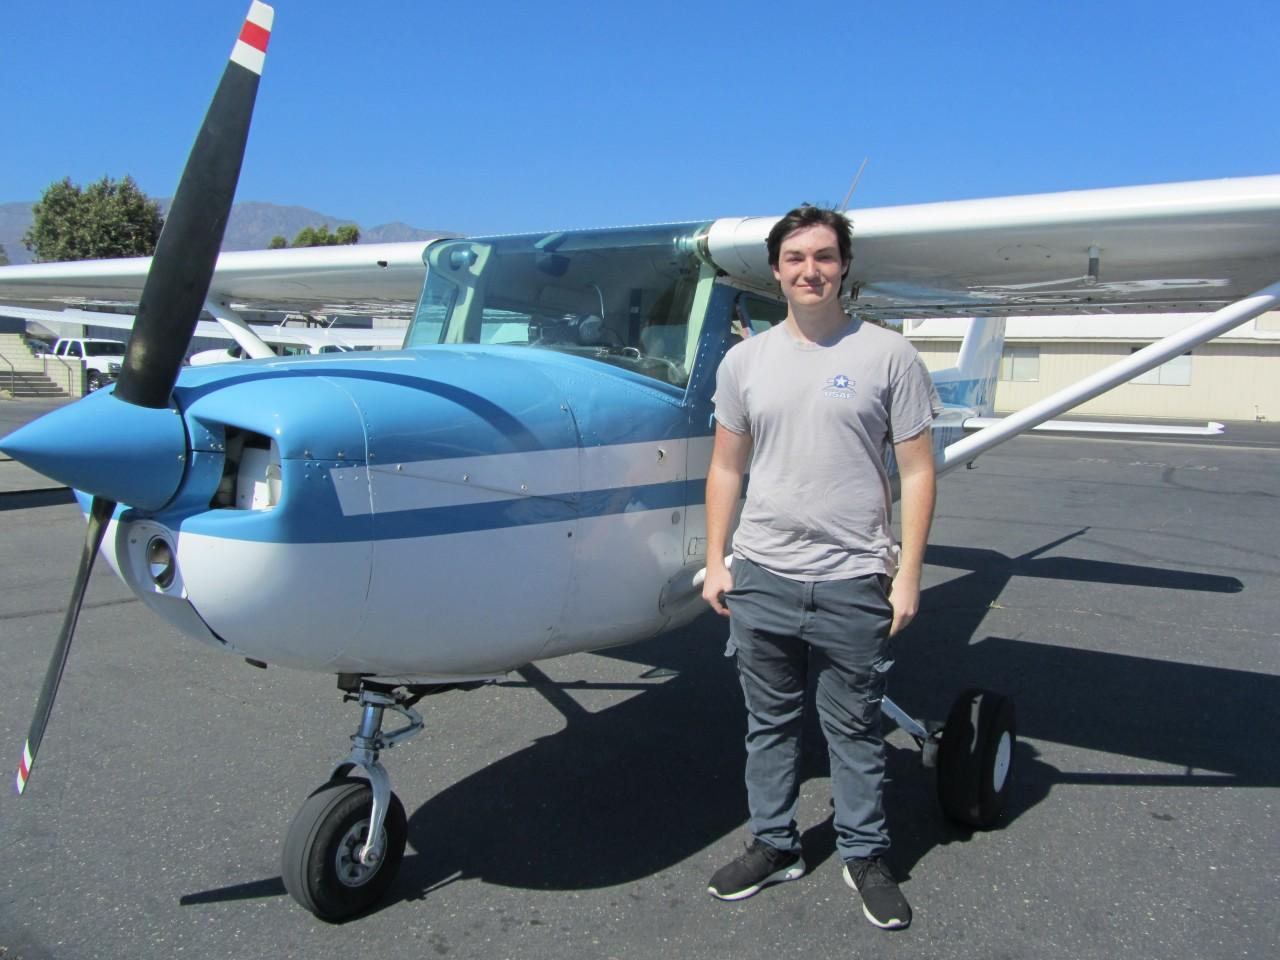 First Solo - Alex Elo!